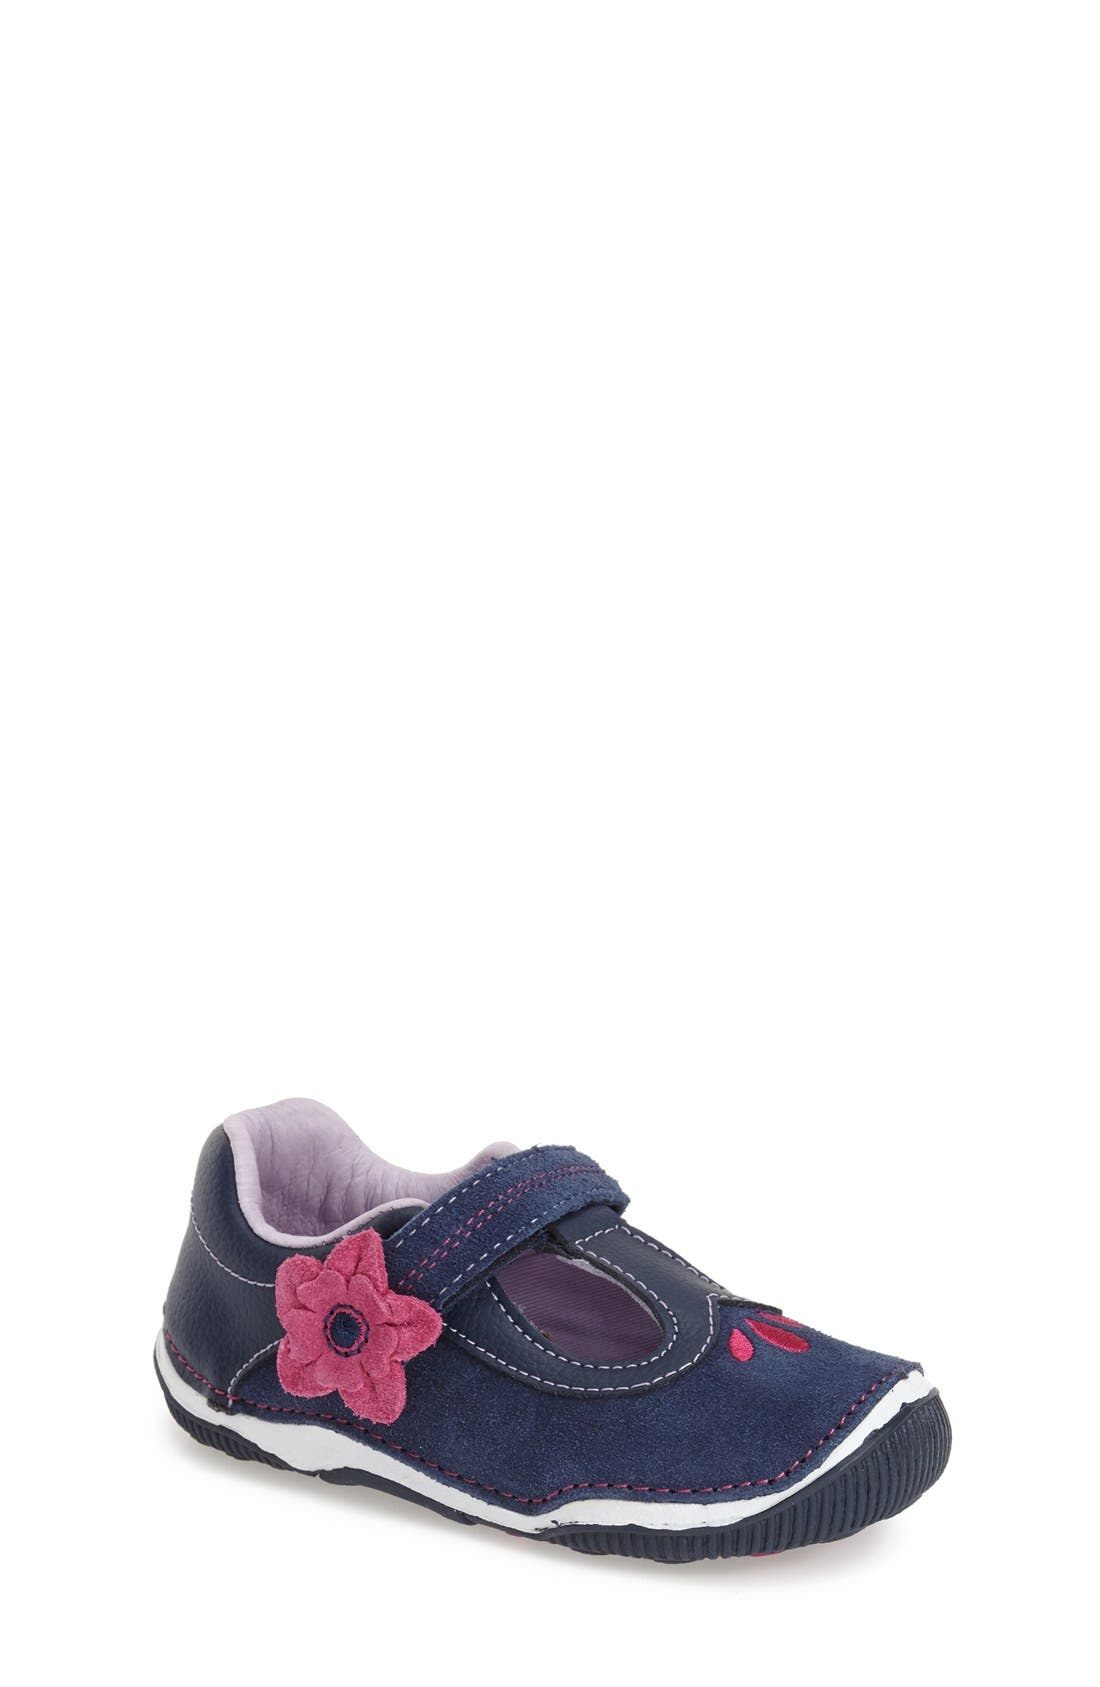 'SRT Tegan' Mary Jane,                             Main thumbnail 1, color,                             Navy